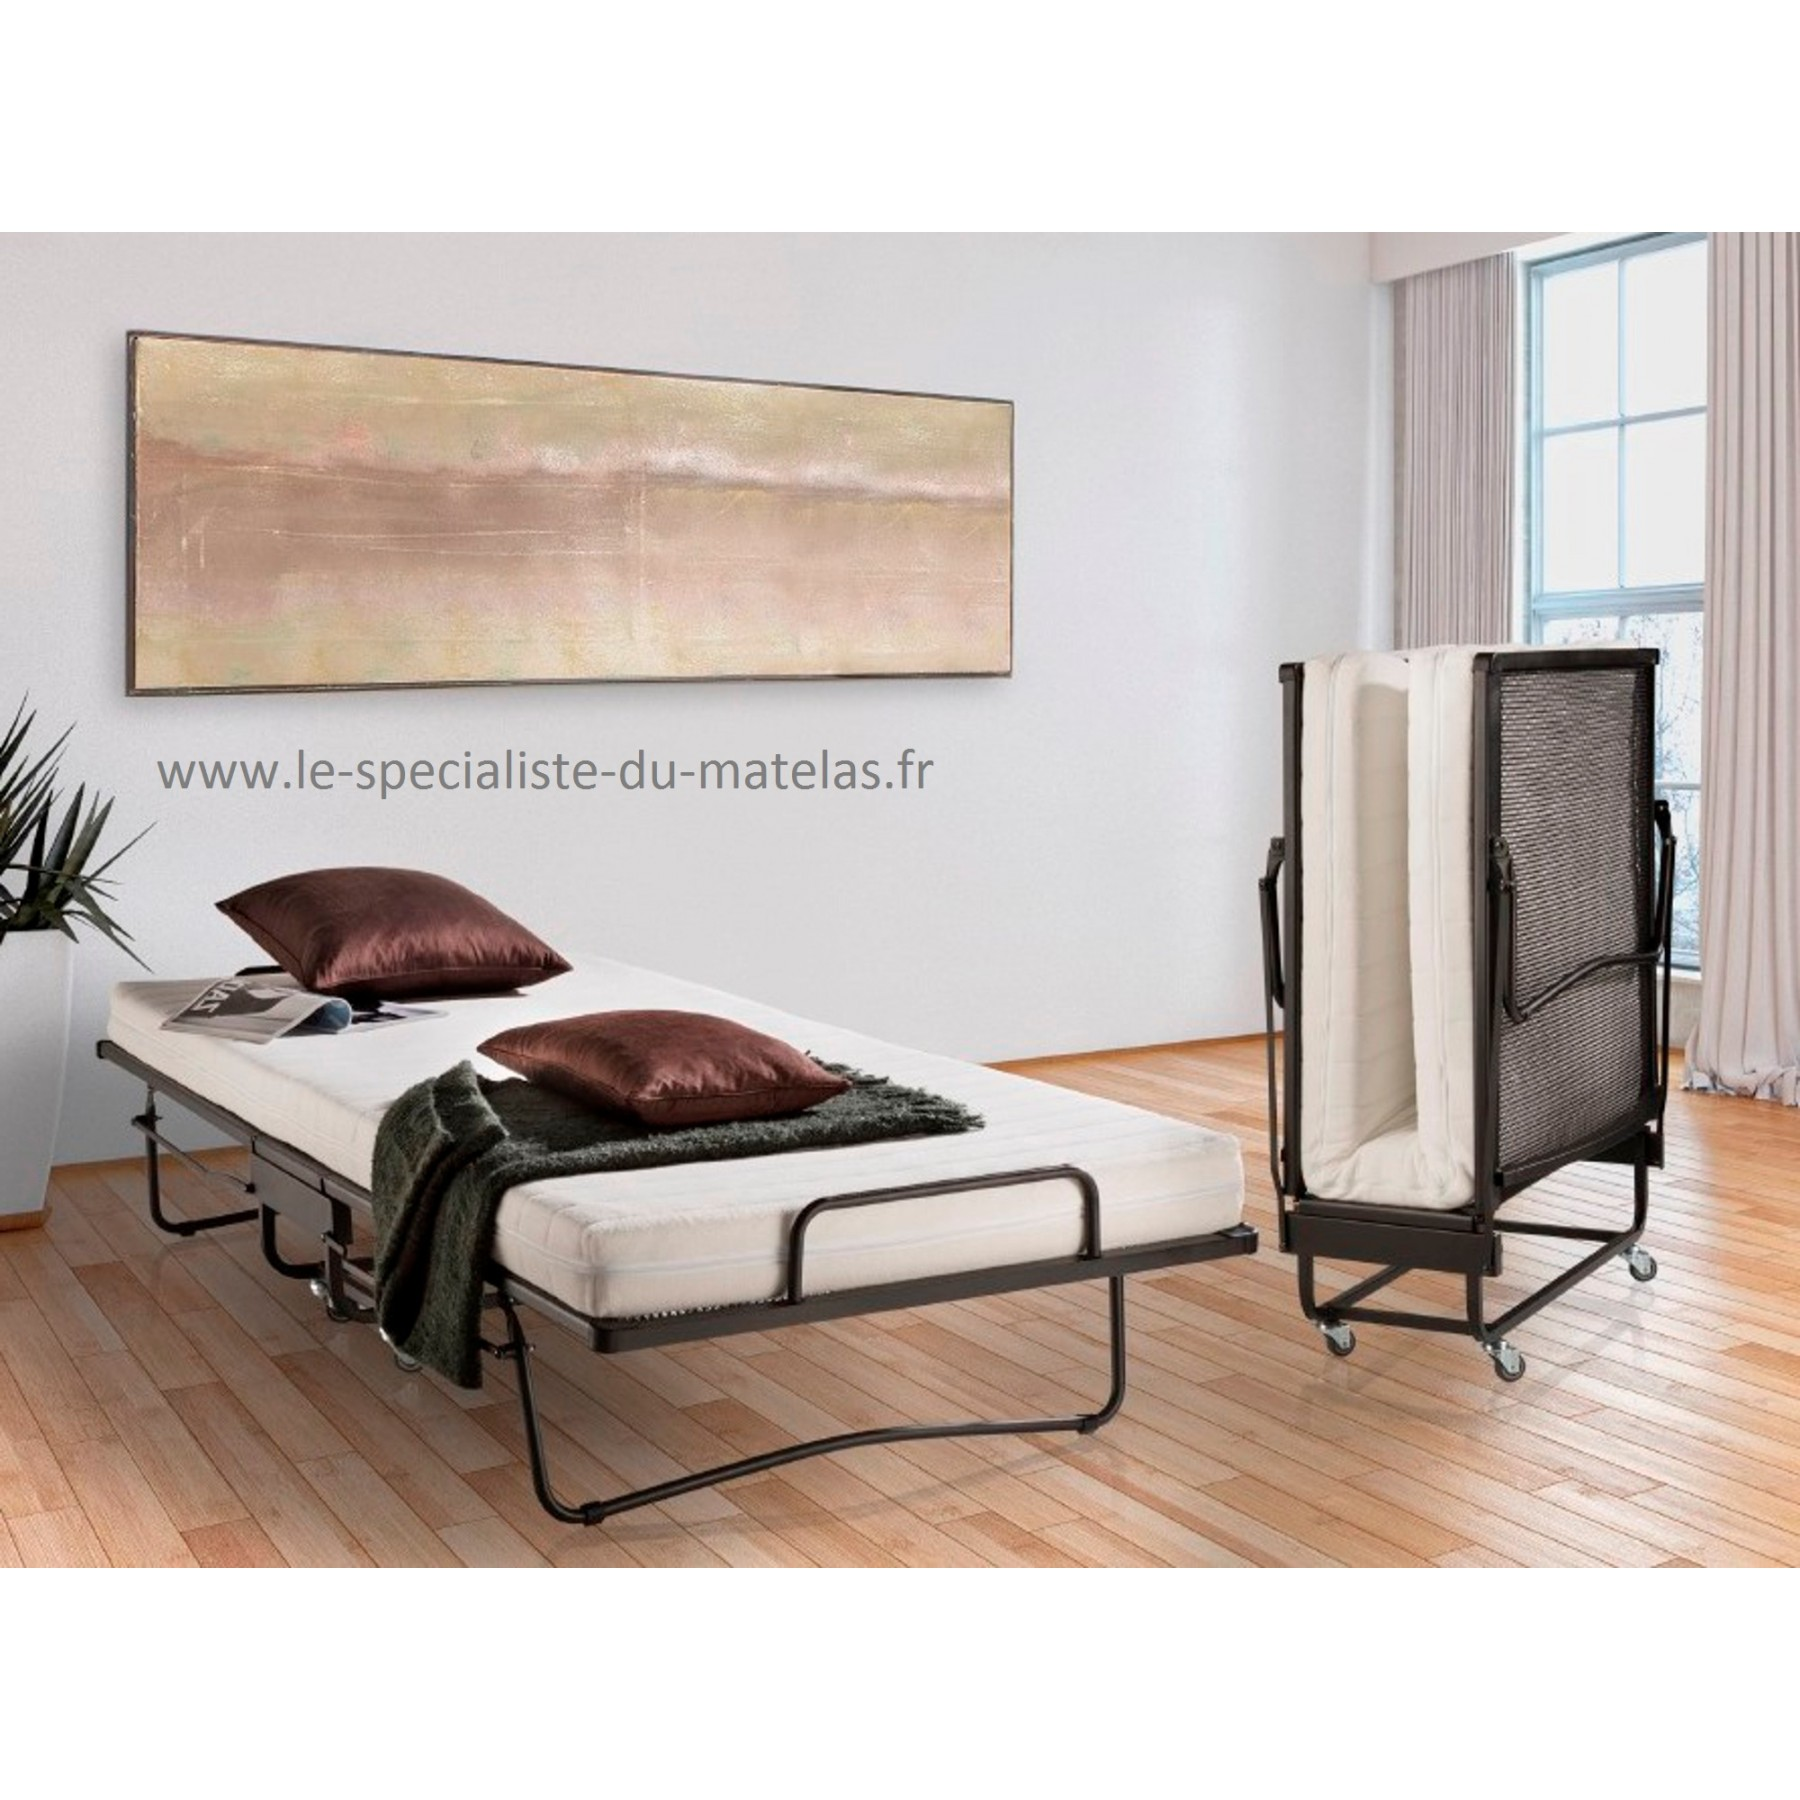 lit pliant en treillis renforc le plus solide d couvrir au le sp cialiste du matelas. Black Bedroom Furniture Sets. Home Design Ideas